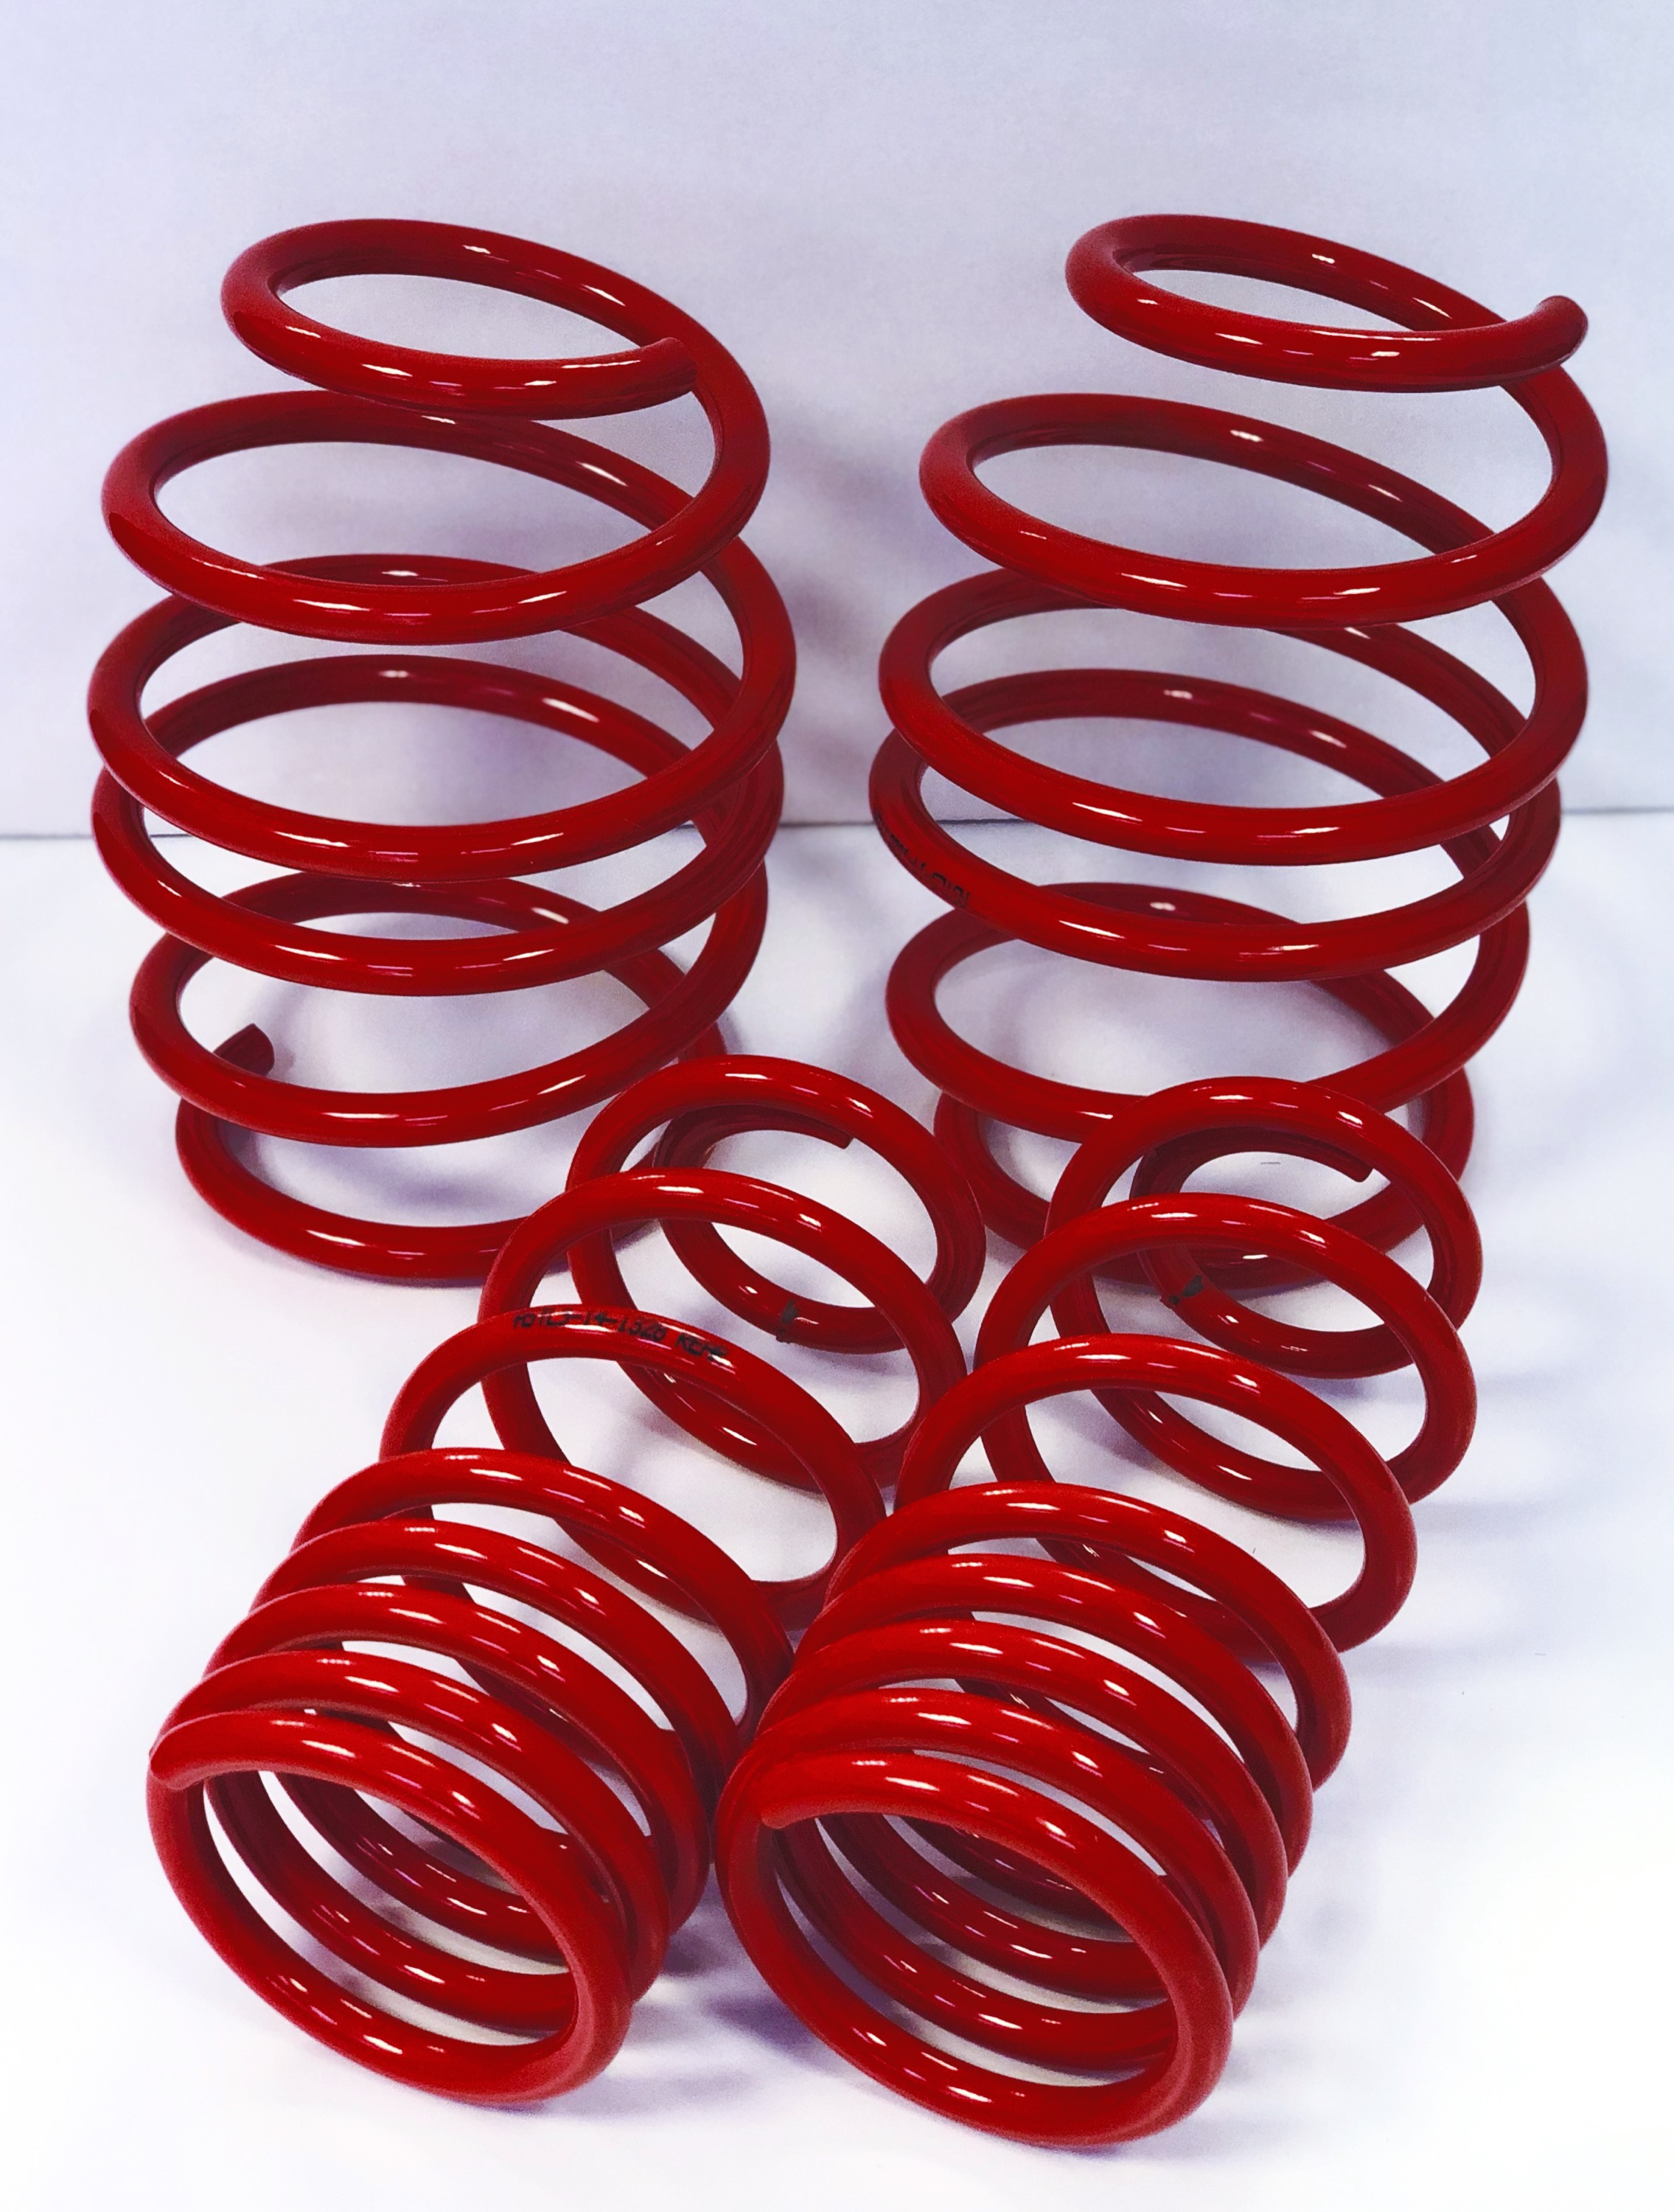 Vauxhall CALIBRA AST Suspension Lowering Springs 50MM